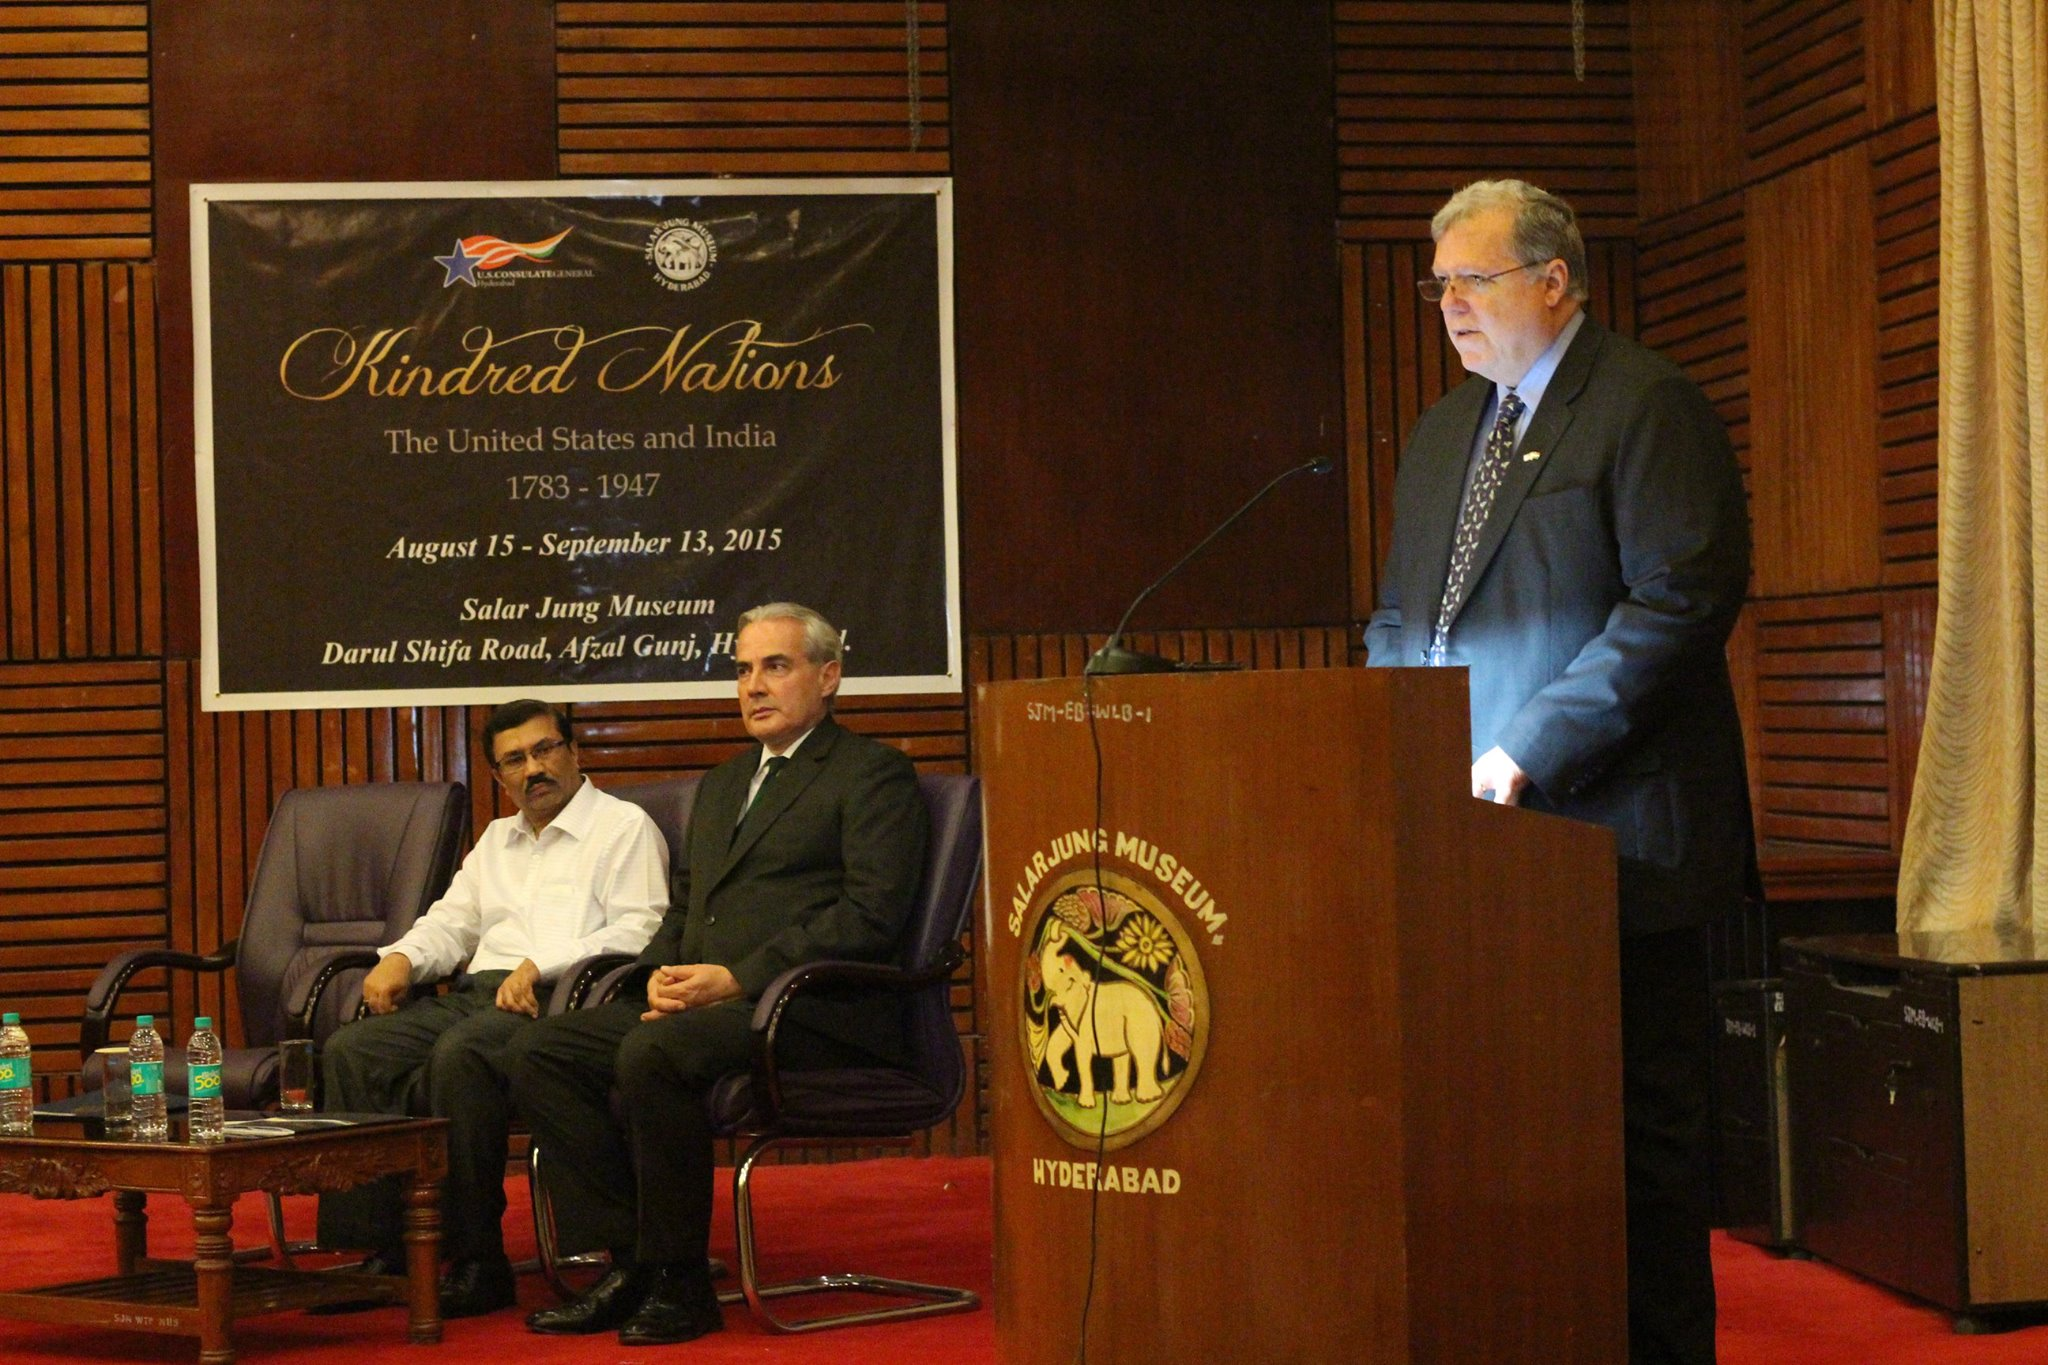 Acting Consul General B. Jamison Fouss speaks at the opening of Kindred Nations in Hyderabad at the Salar Jung Museum & Library, while museum director A. Nagender Reddy and Public Affairs Officer Gabriel Hons-Olivier listen.